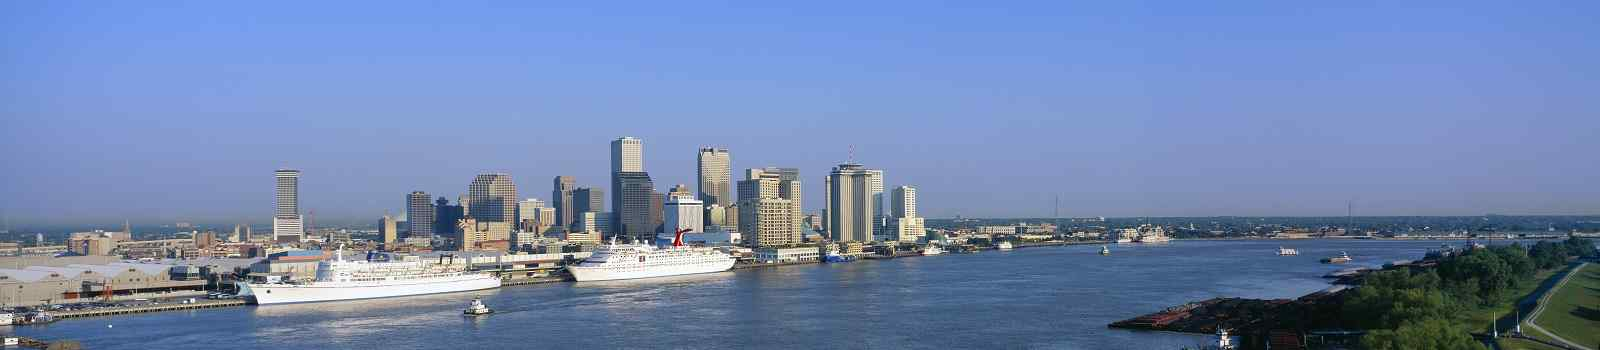 SOUTHERN-BELLE  New Orleans Skyline 177803234